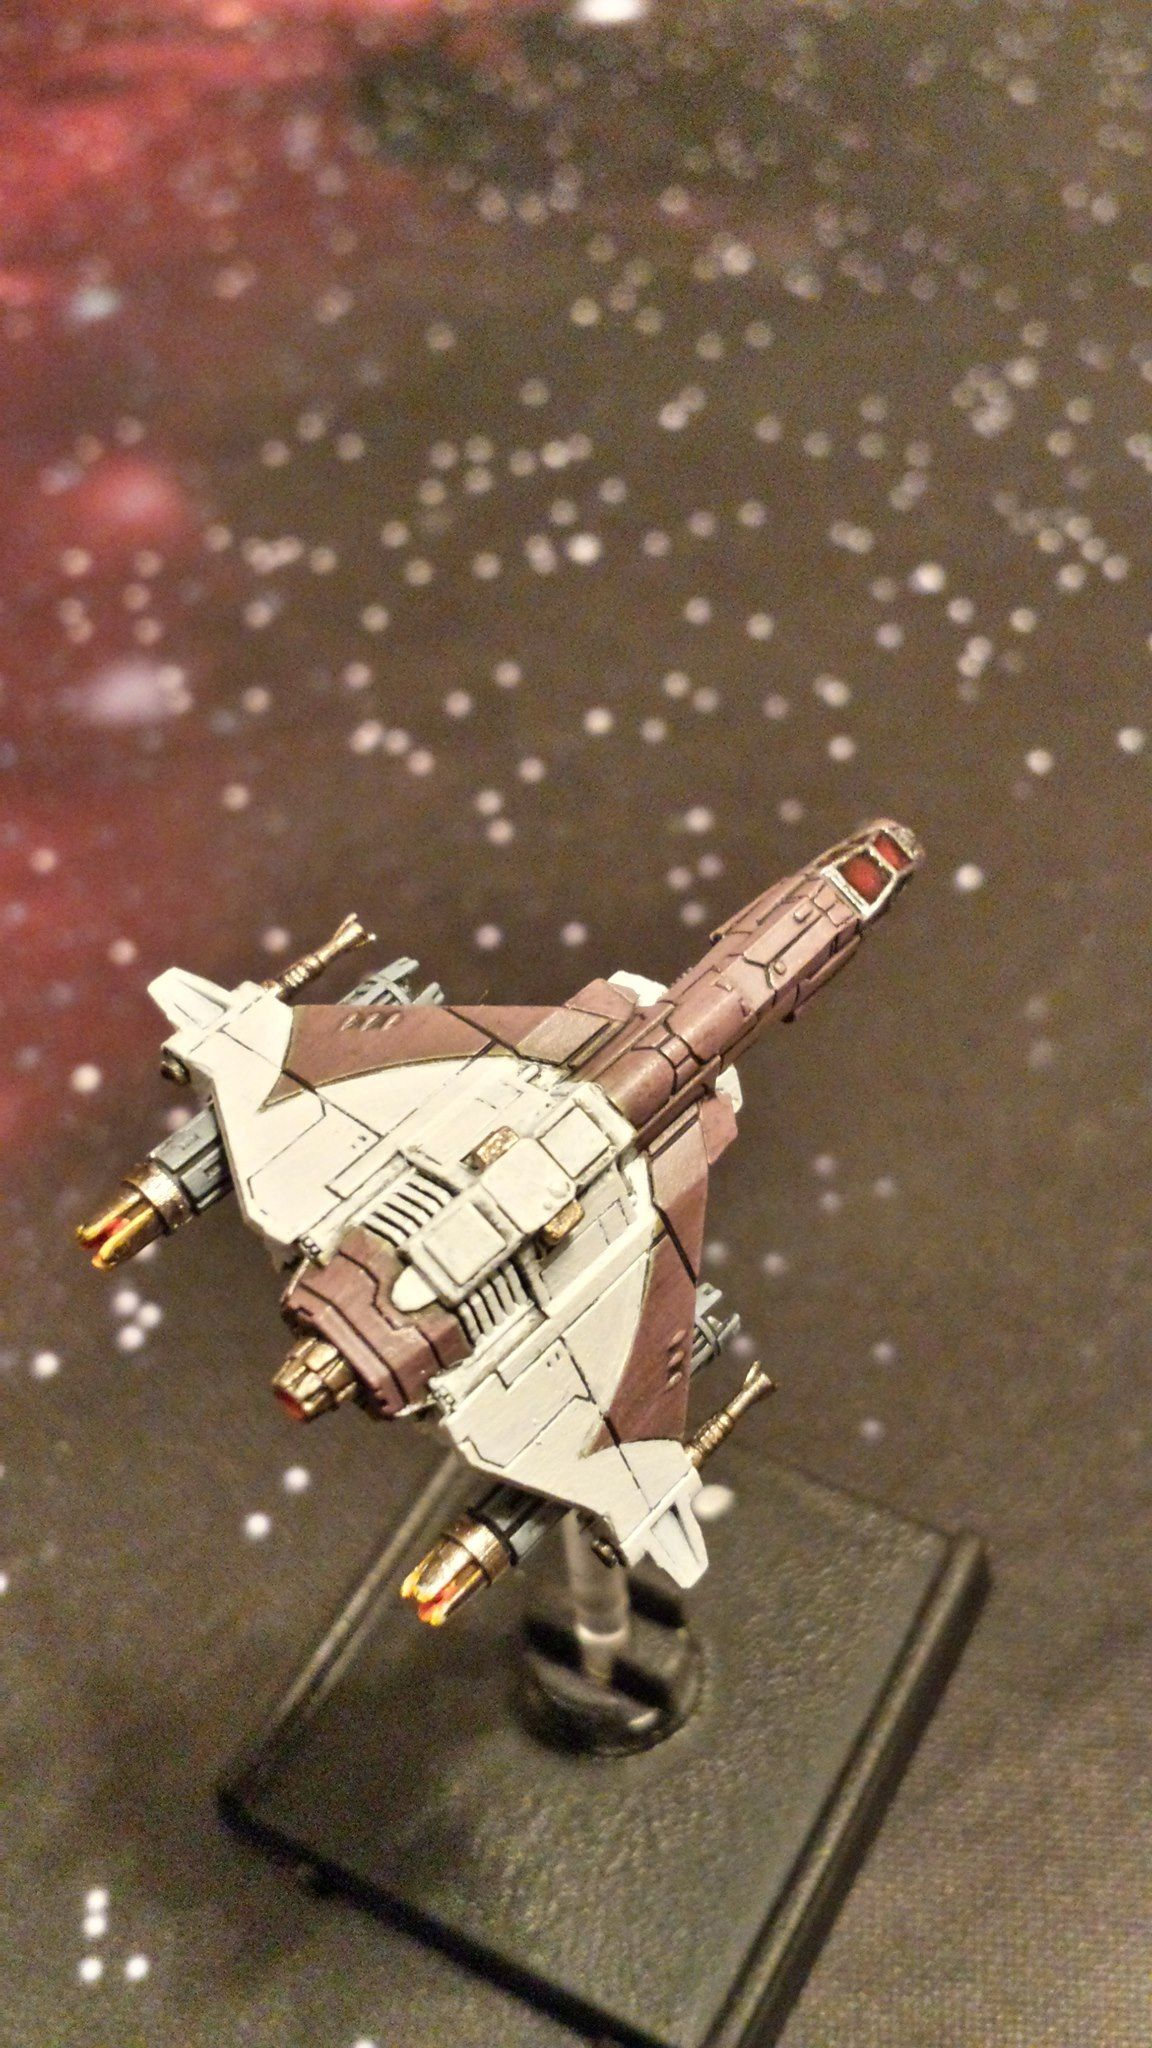 11973933 1461730740799664 344433952 O Jpg 1152 2048 Star Wars Awesome X Wing Miniatures Star Wars Game